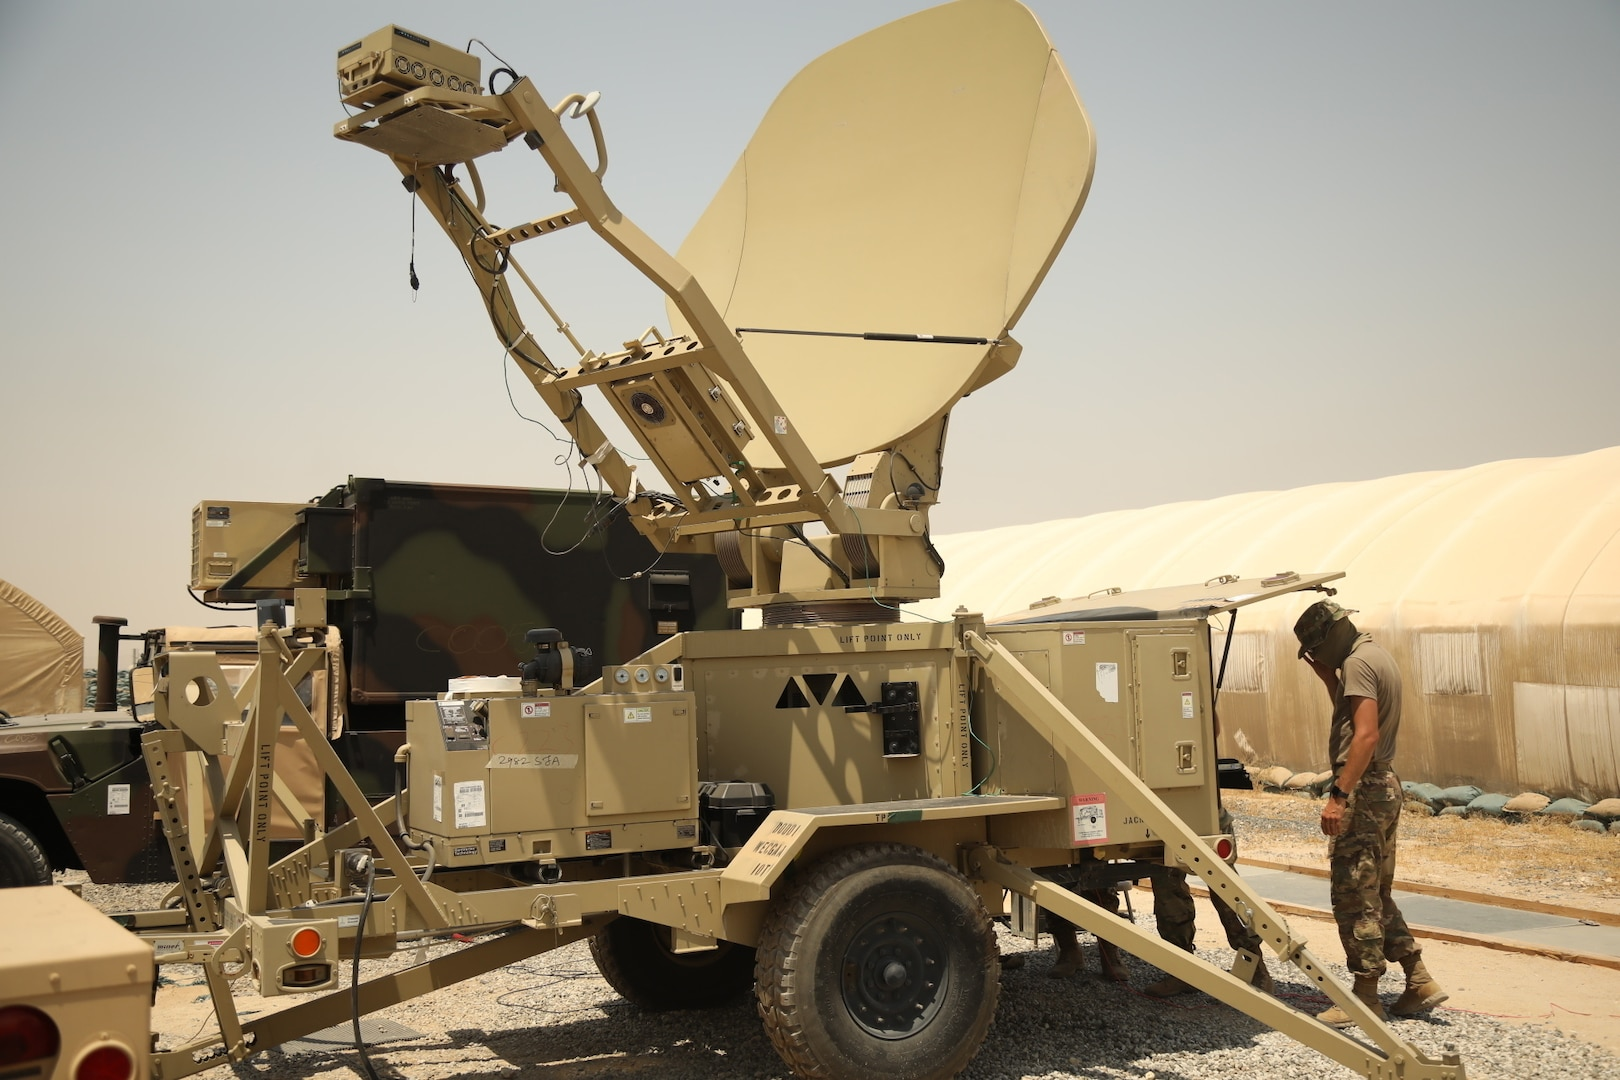 A soldier sets up a satellite.